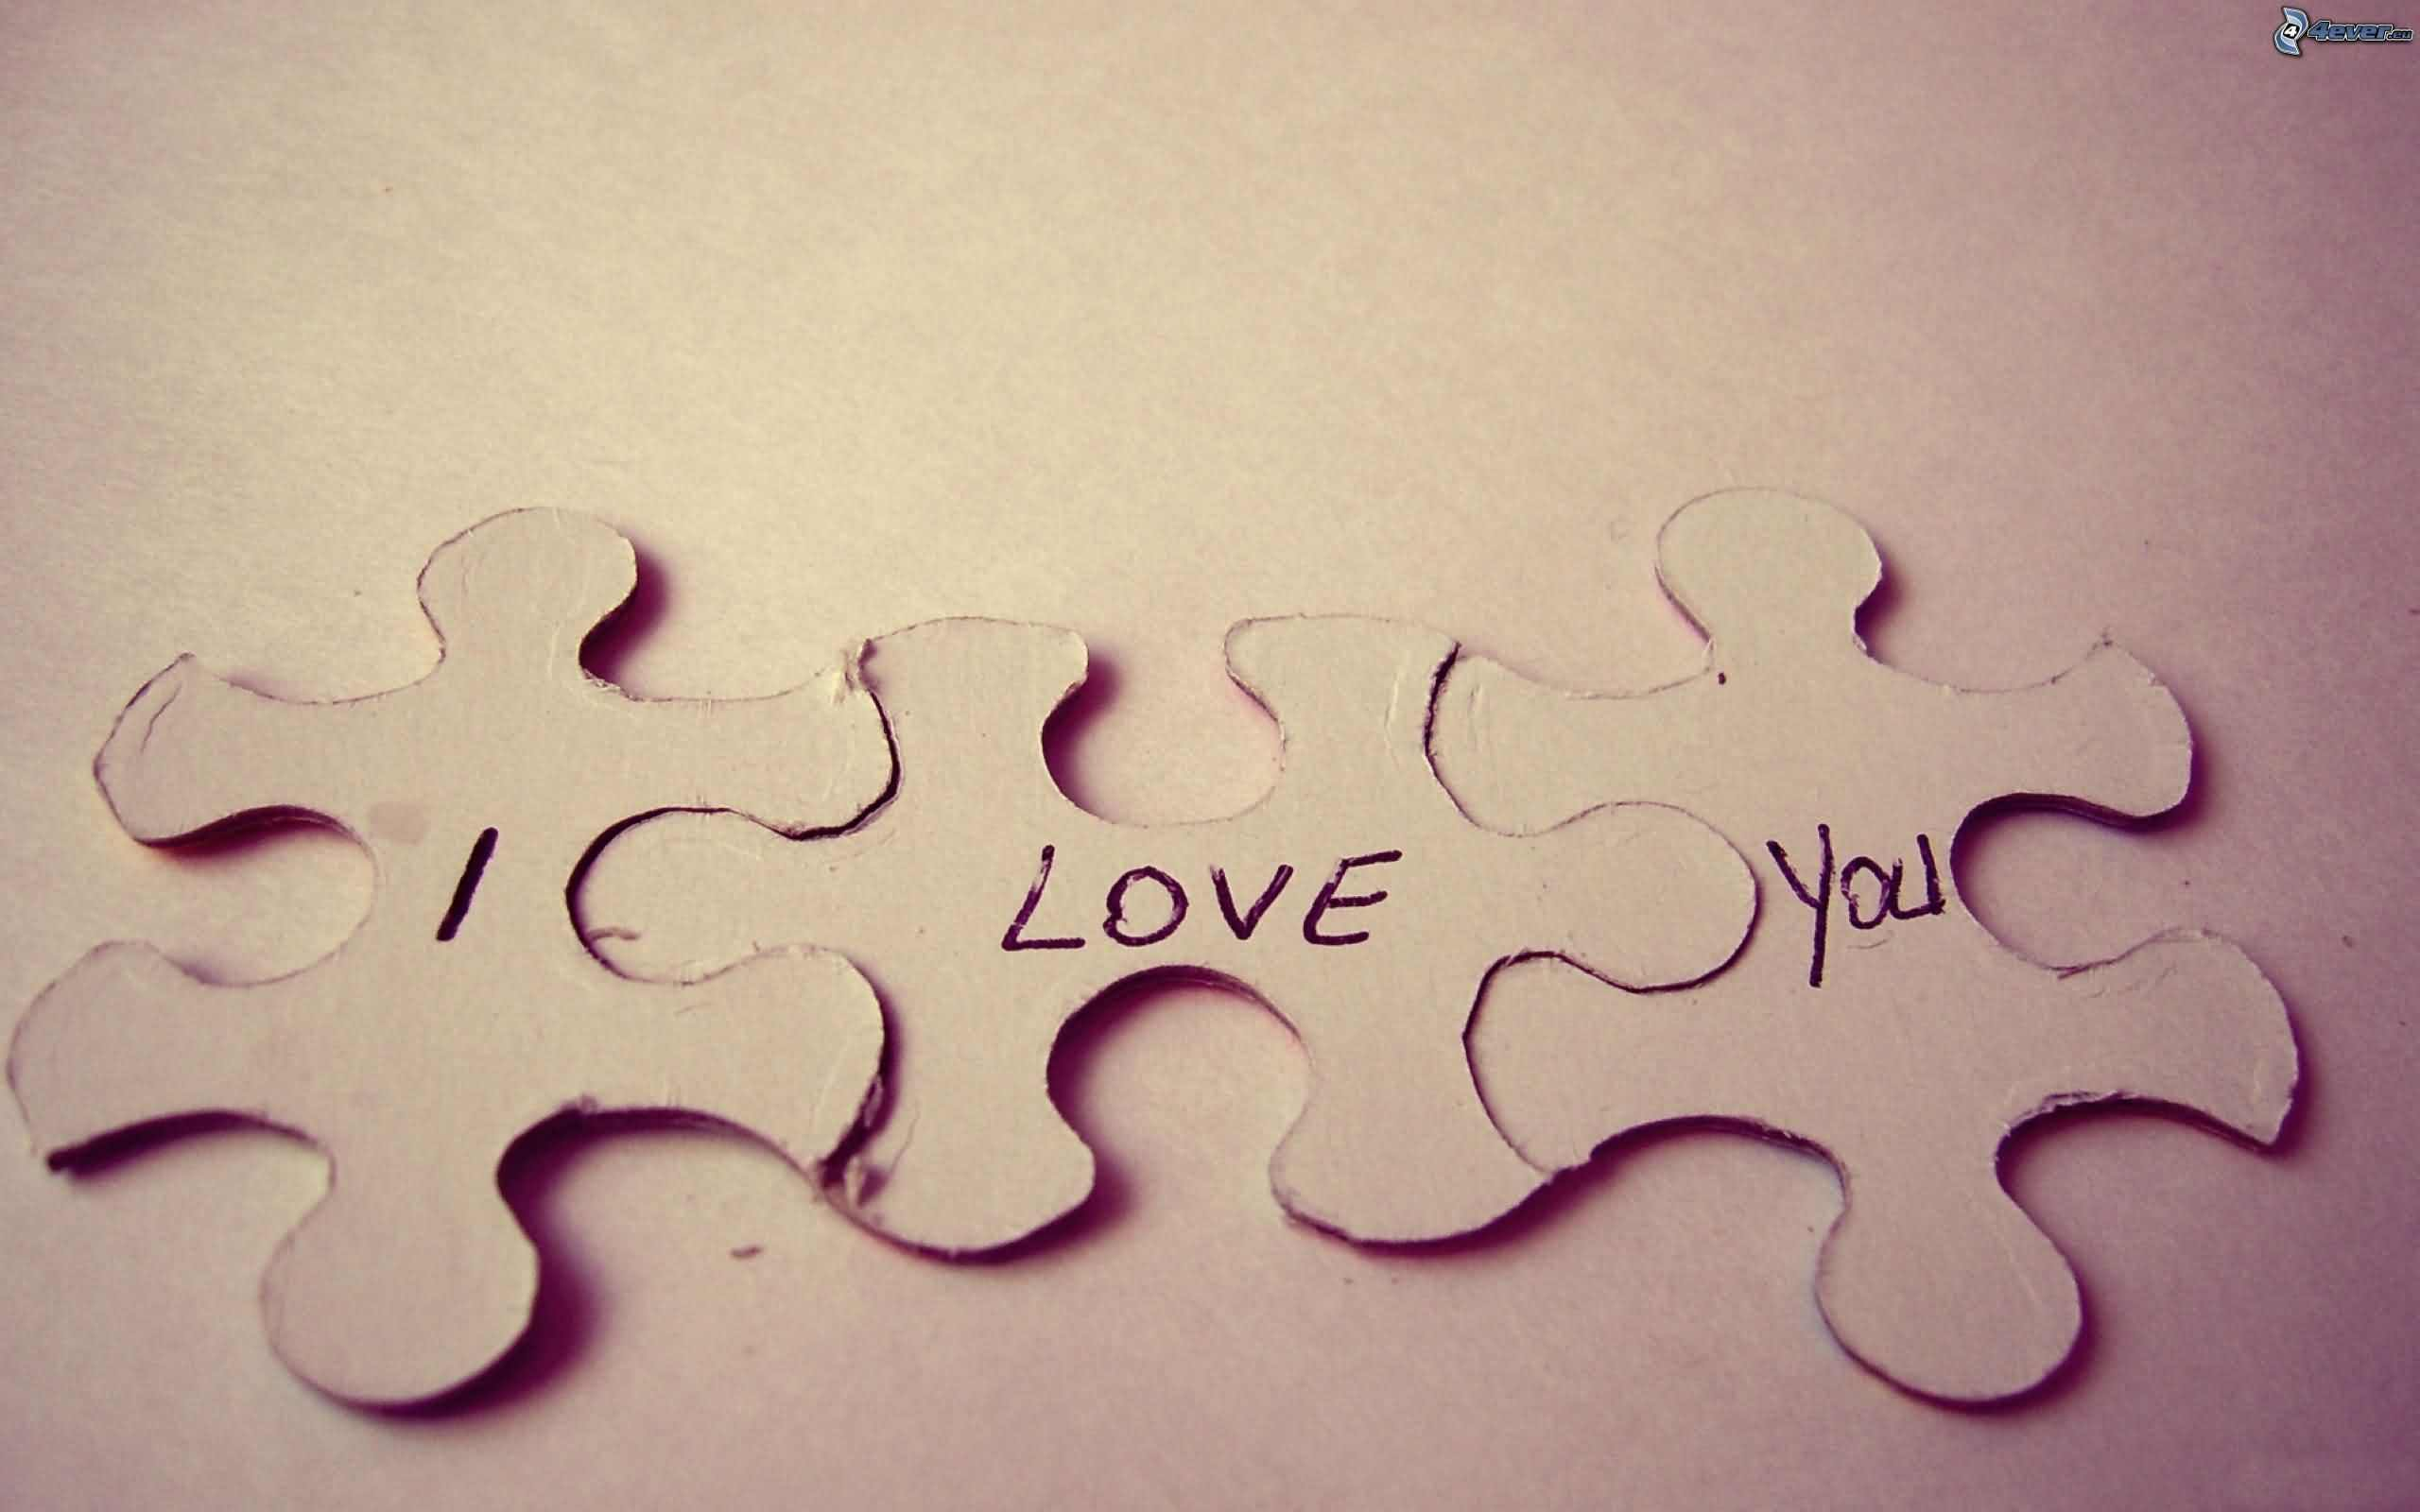 I Love You Puzzle Image